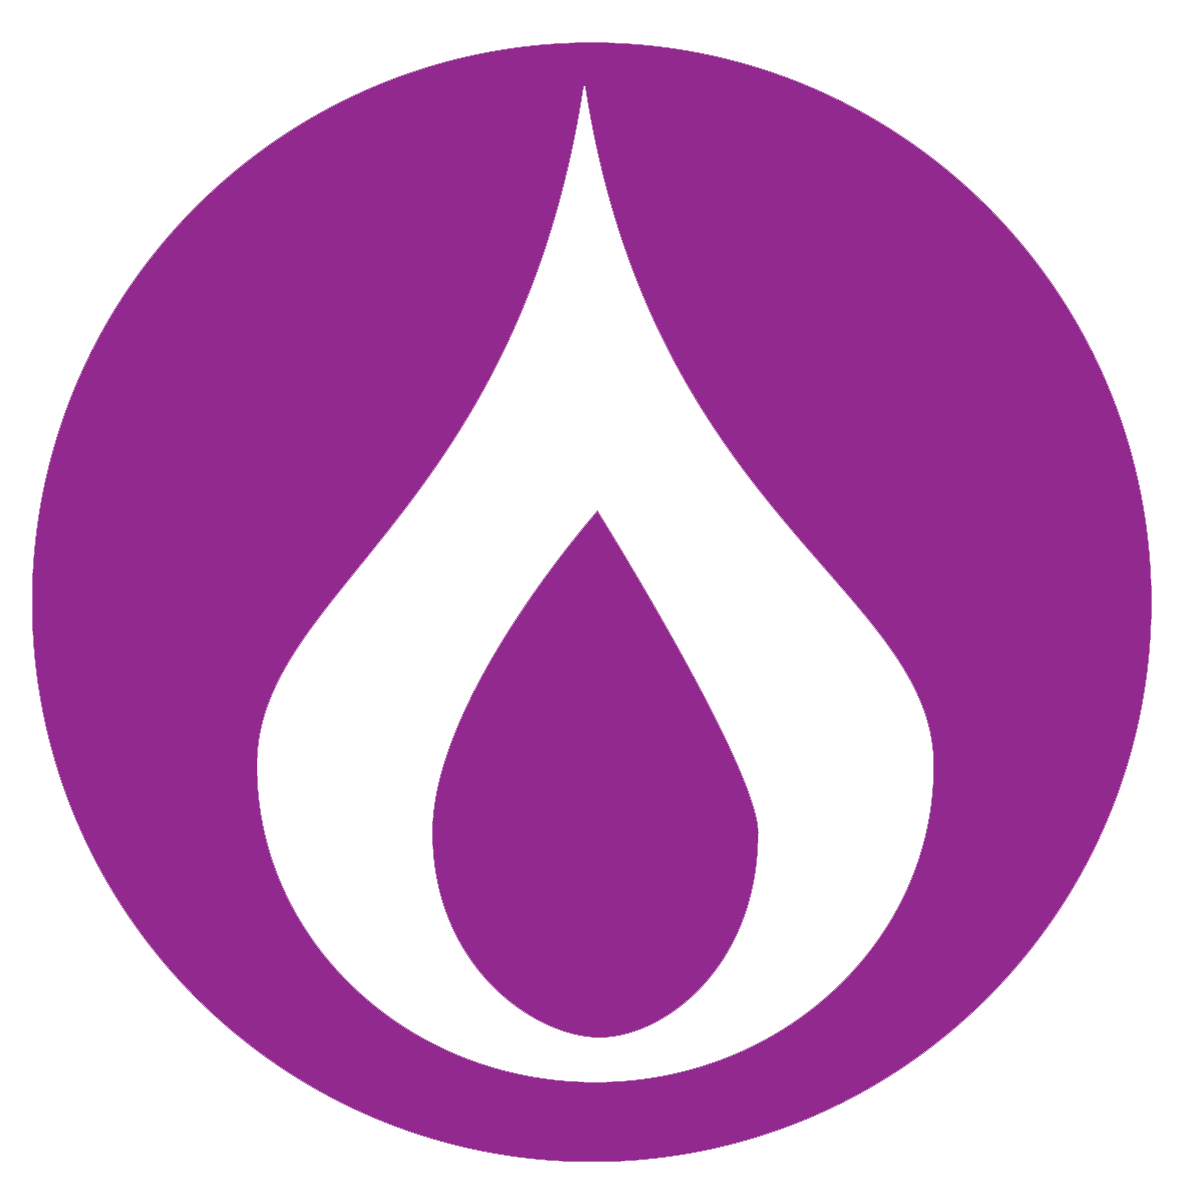 Flame icon on purple background